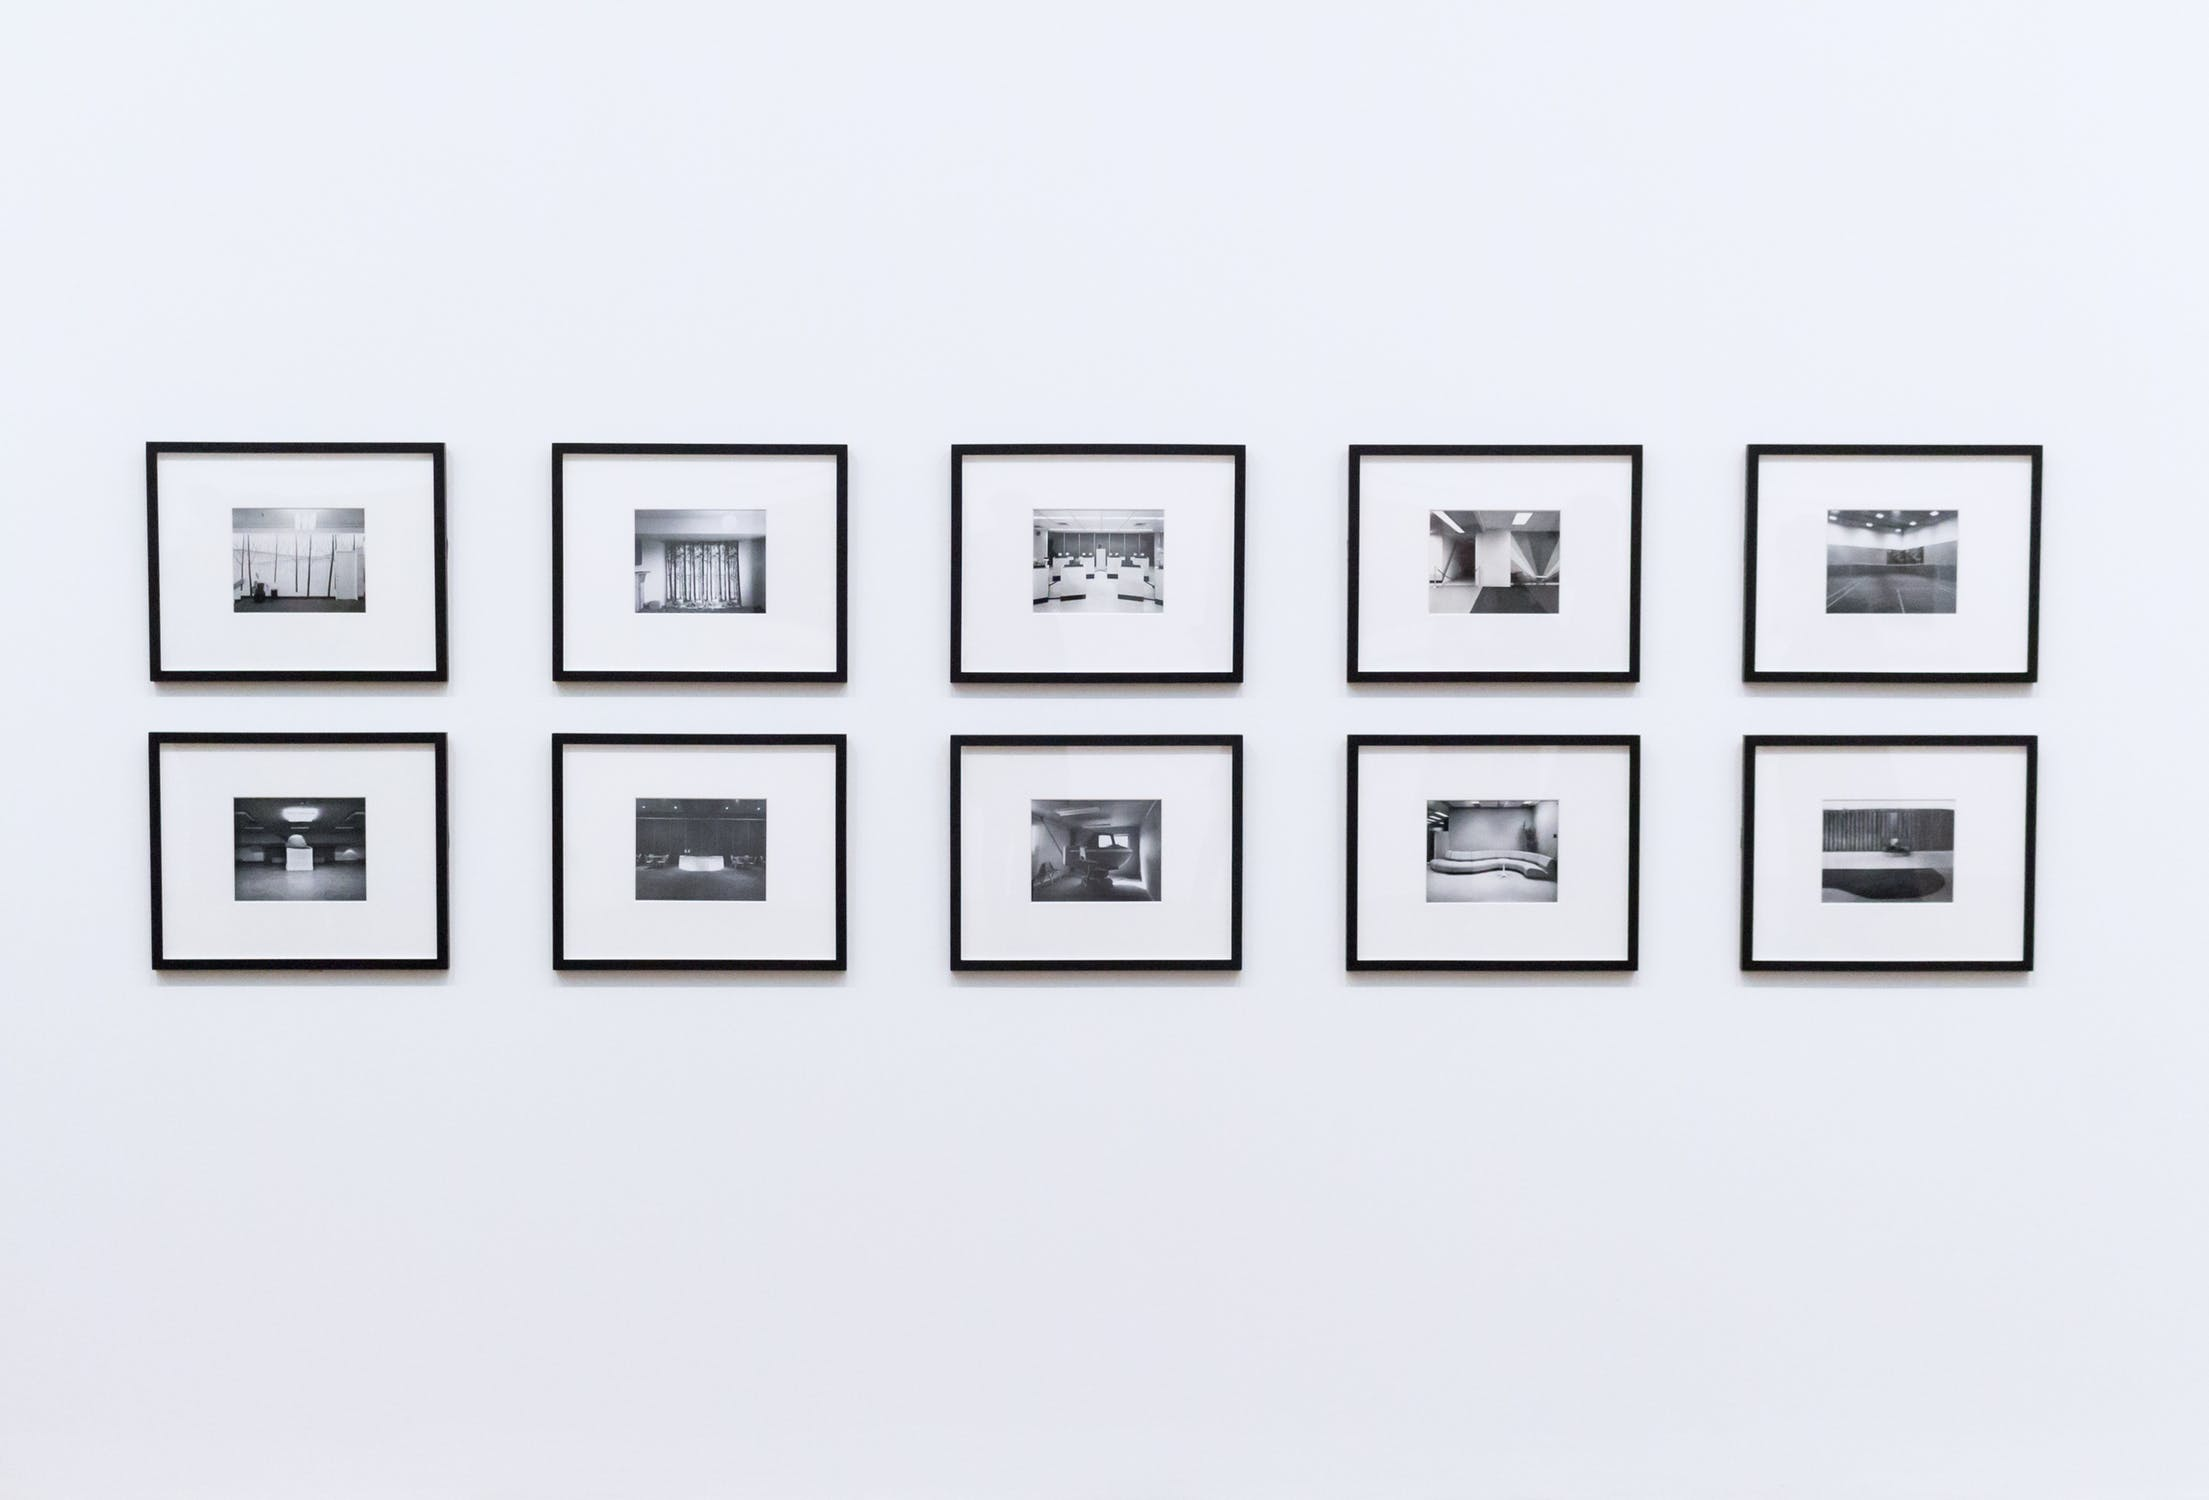 Photographs hanging on the wall. Photographs can help seniors make their new place feel like home.